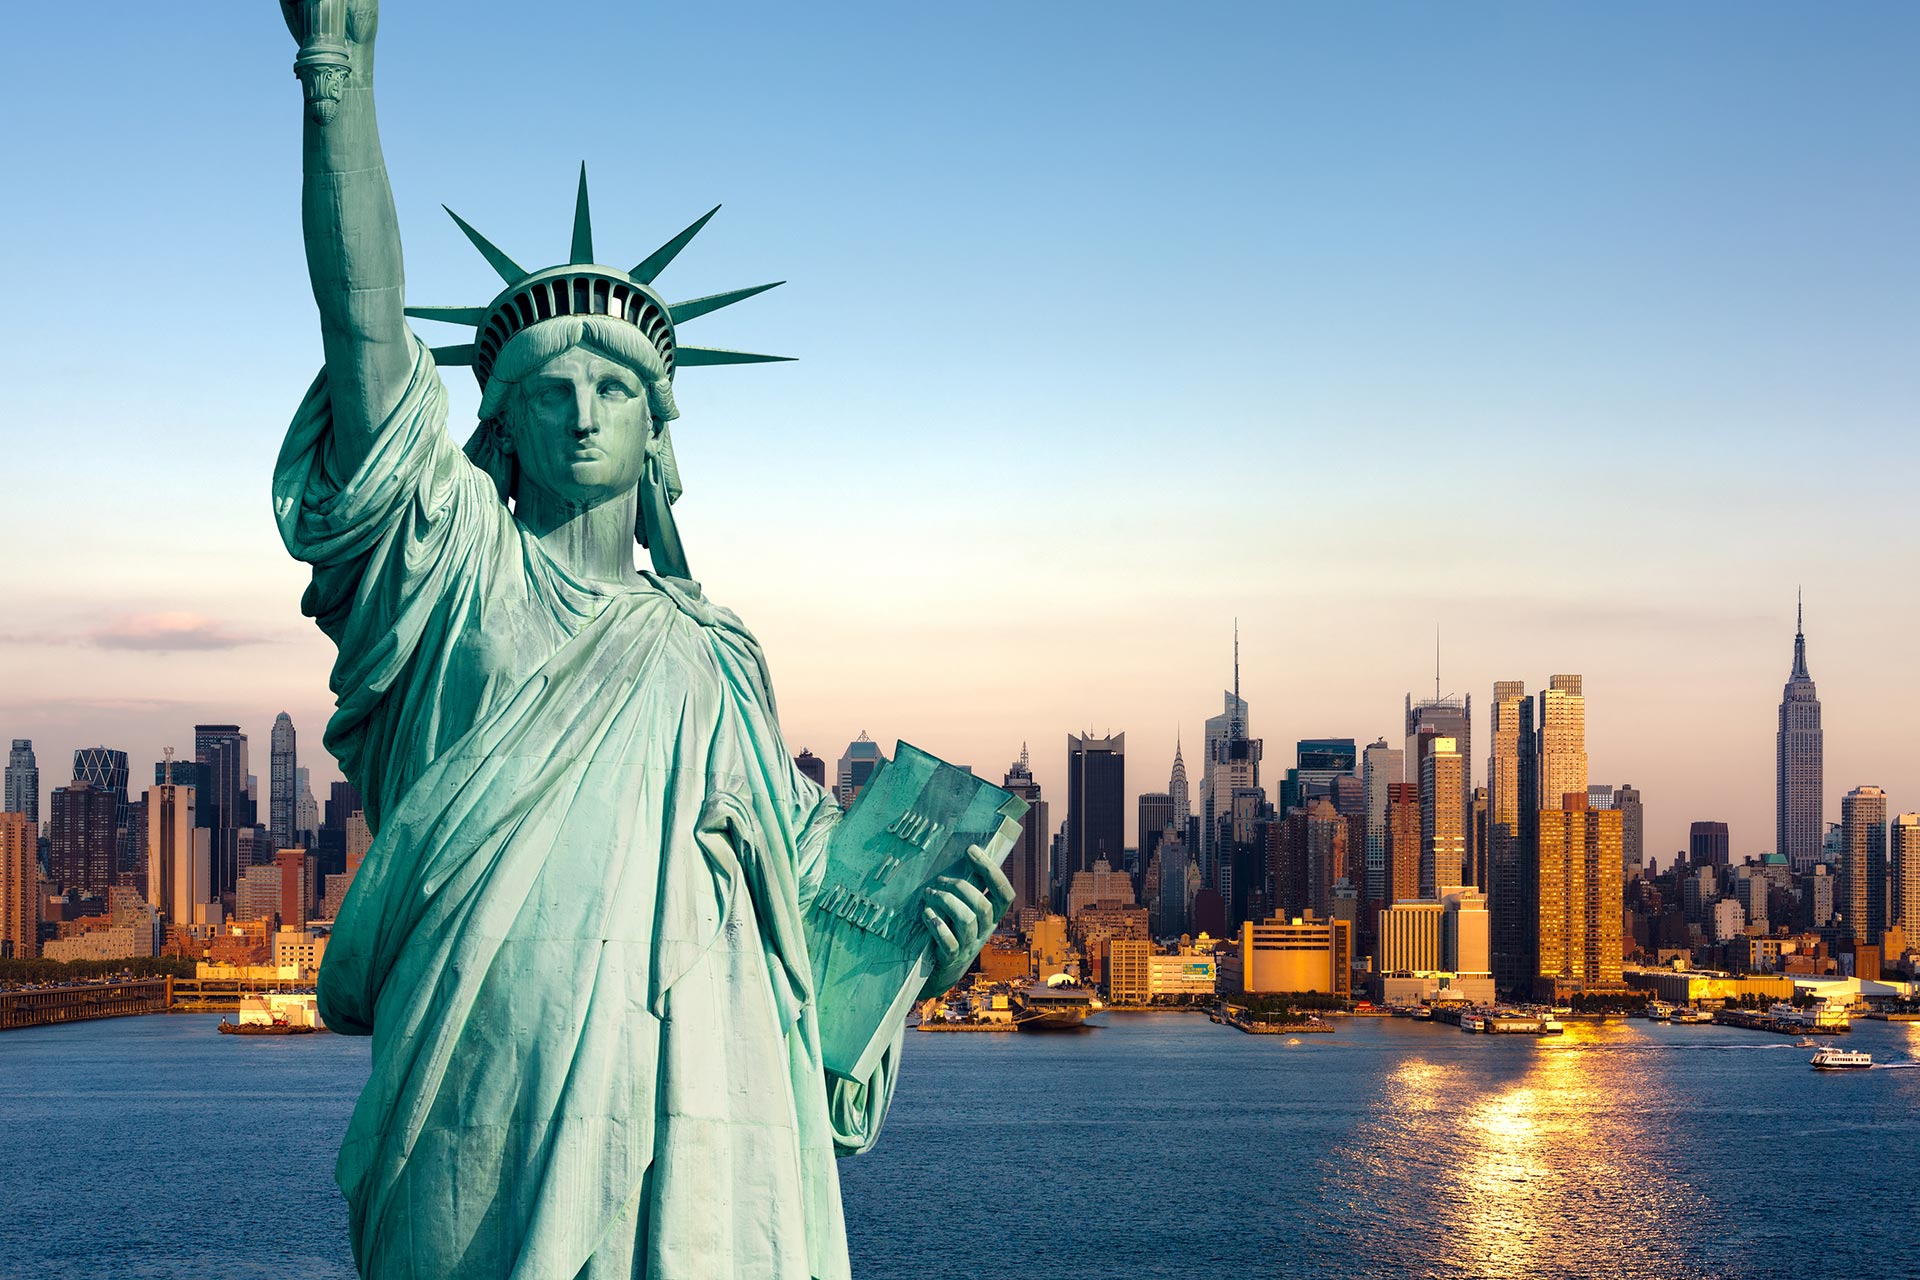 Doing business in New York is easy with CT Corporation's support